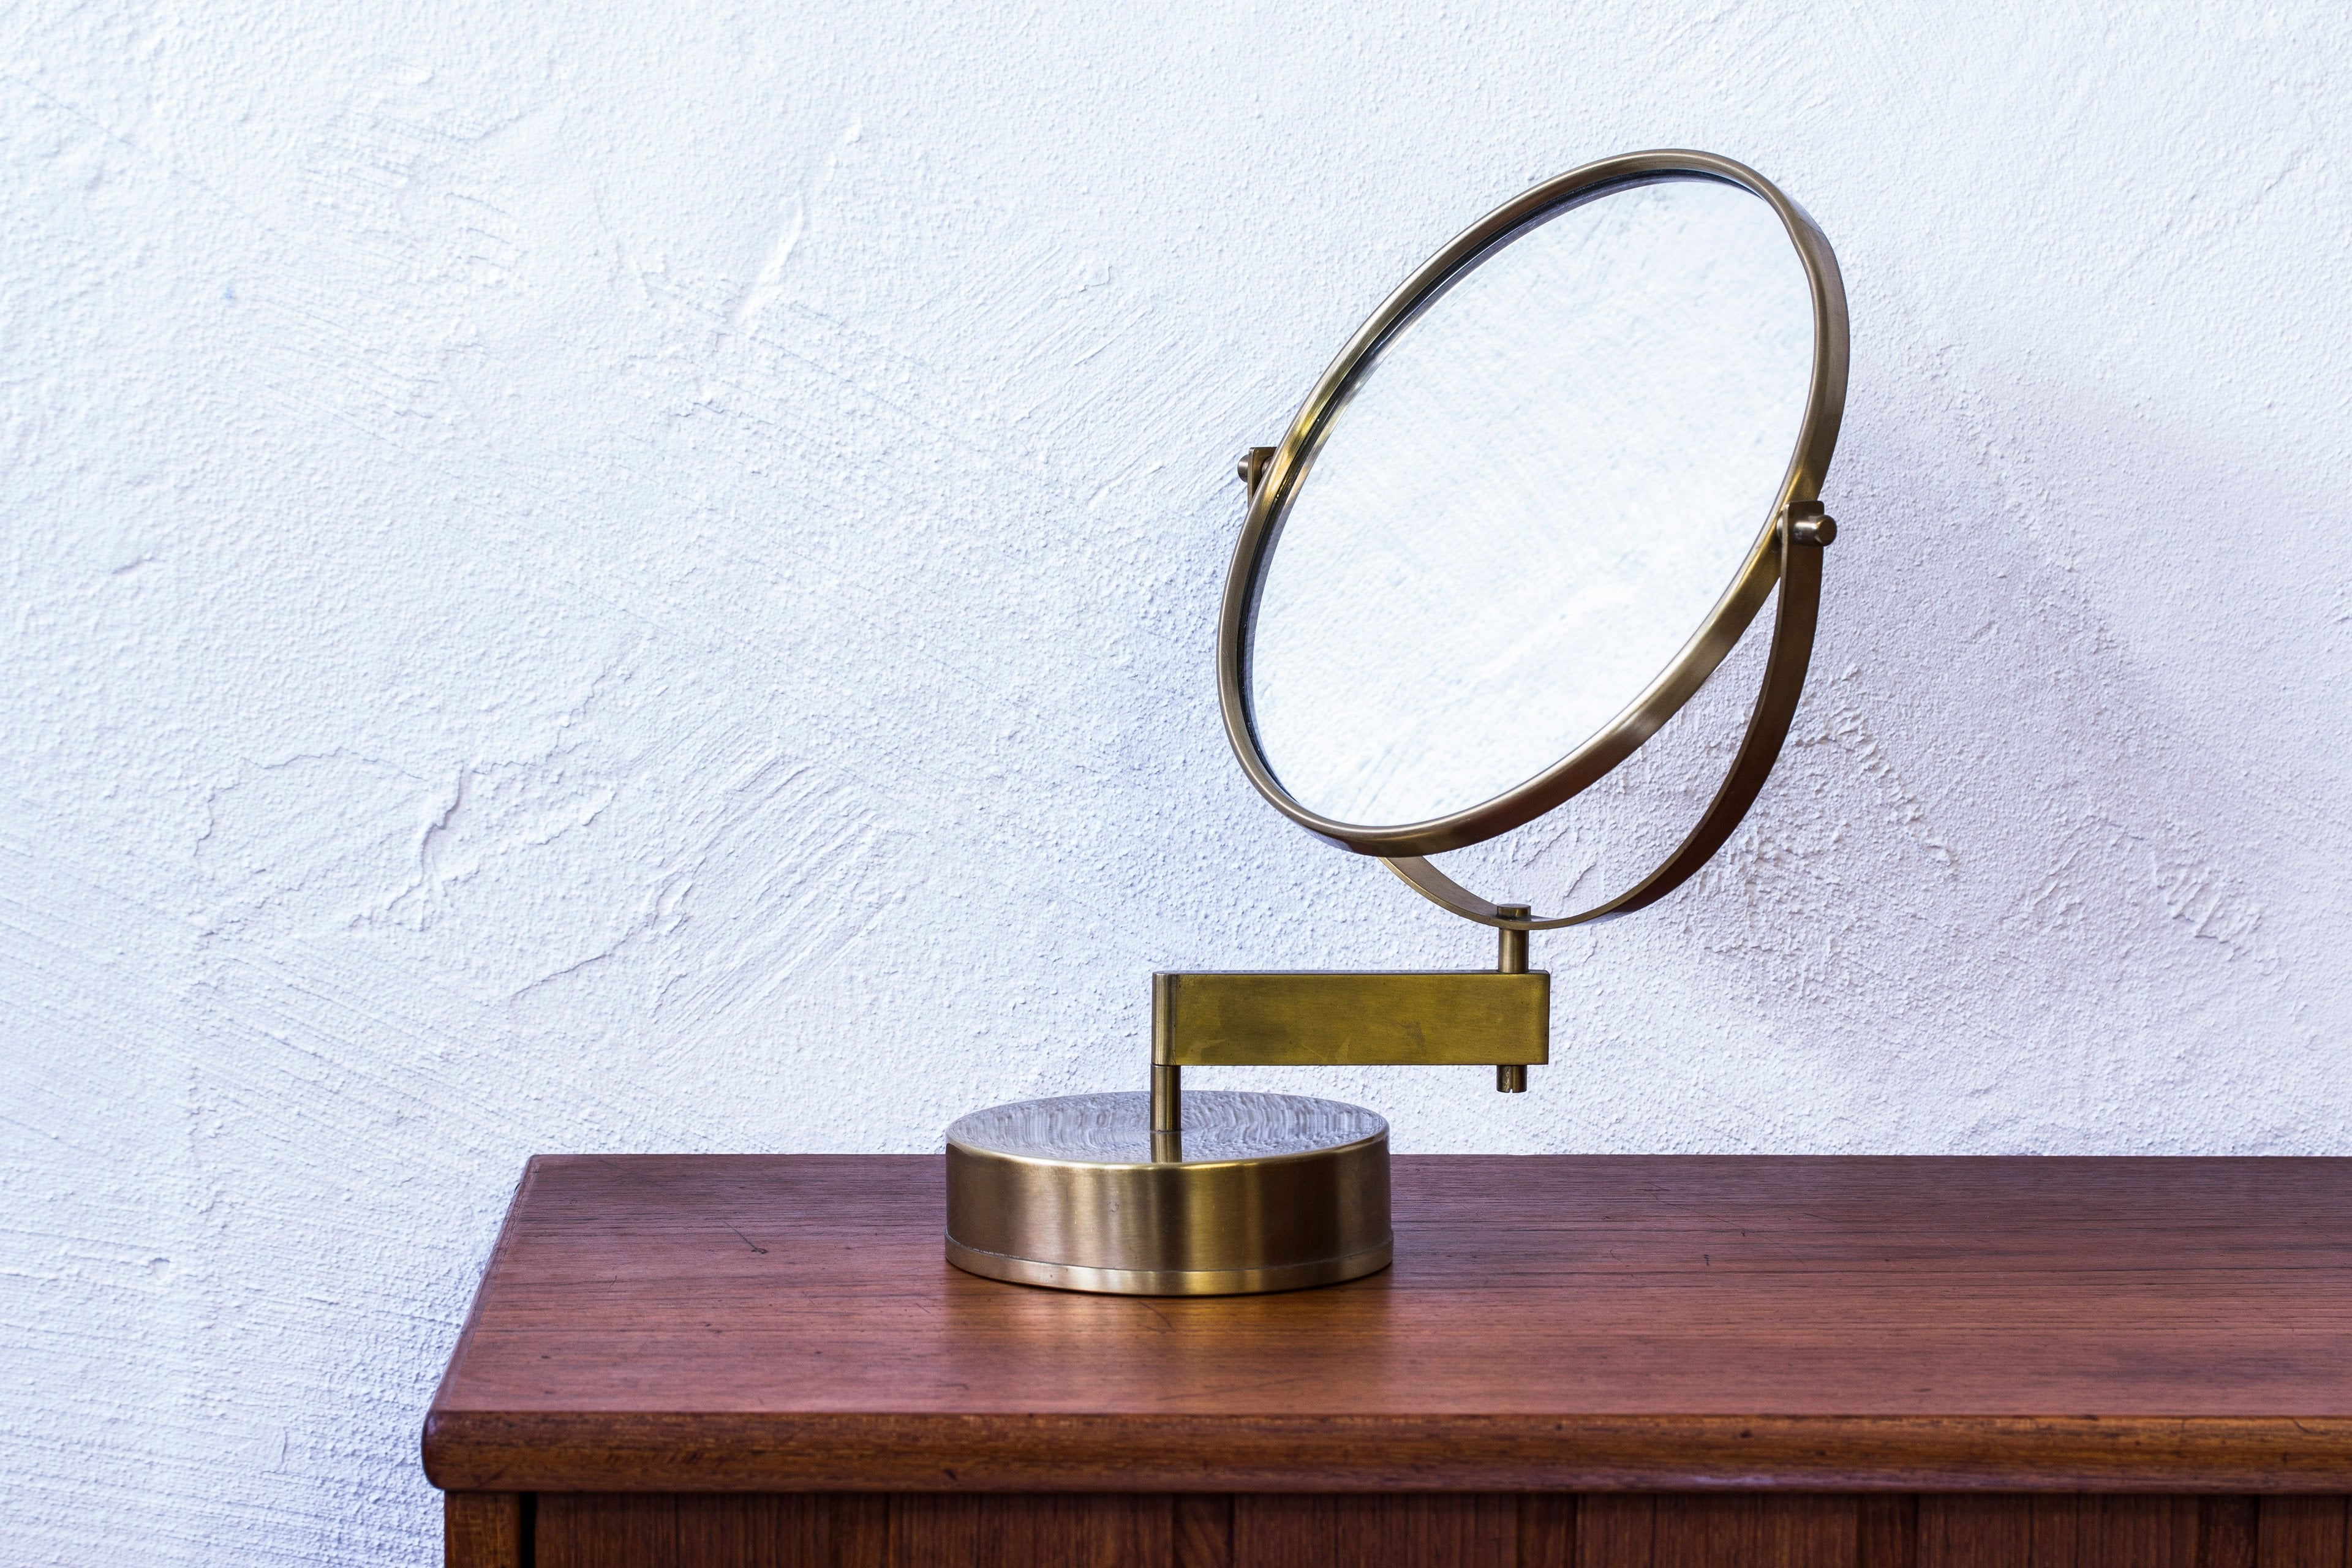 Vanity mirror by Hans Agne Jakobsson